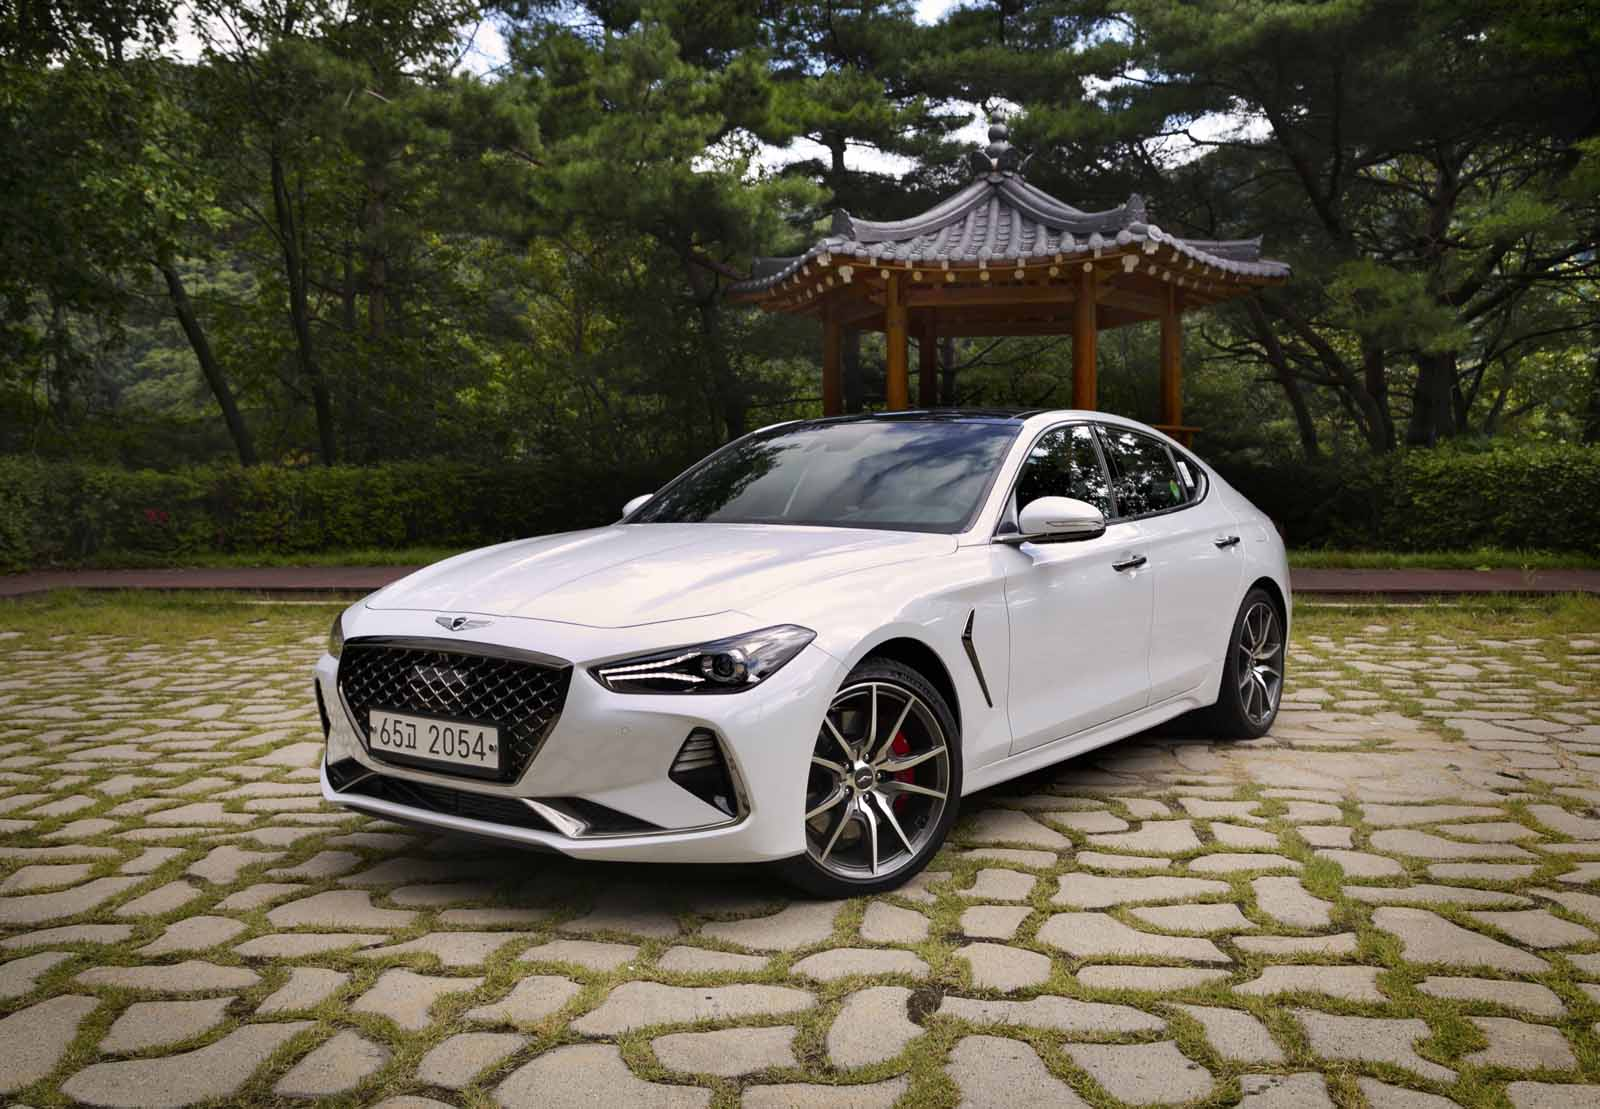 2018 genesis g70 review and first drive autoguide com 7 Speed Manual Transmission Automatic Transmission